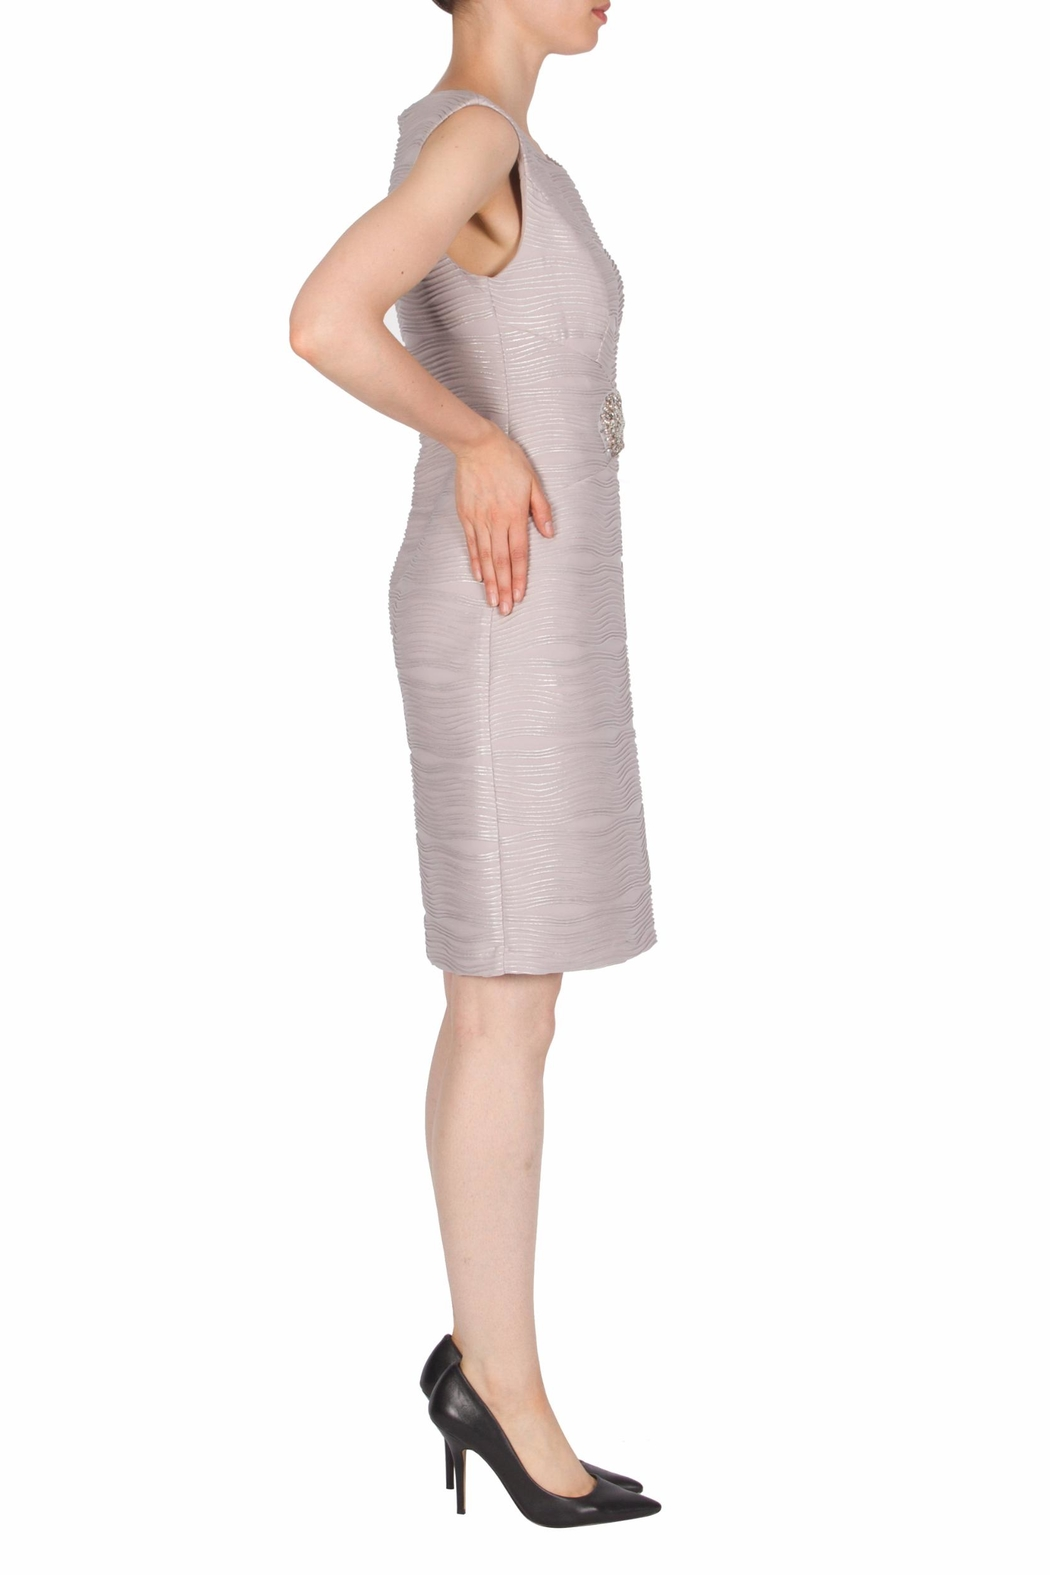 Joseph Ribkoff Monique Dress - Front Full Image